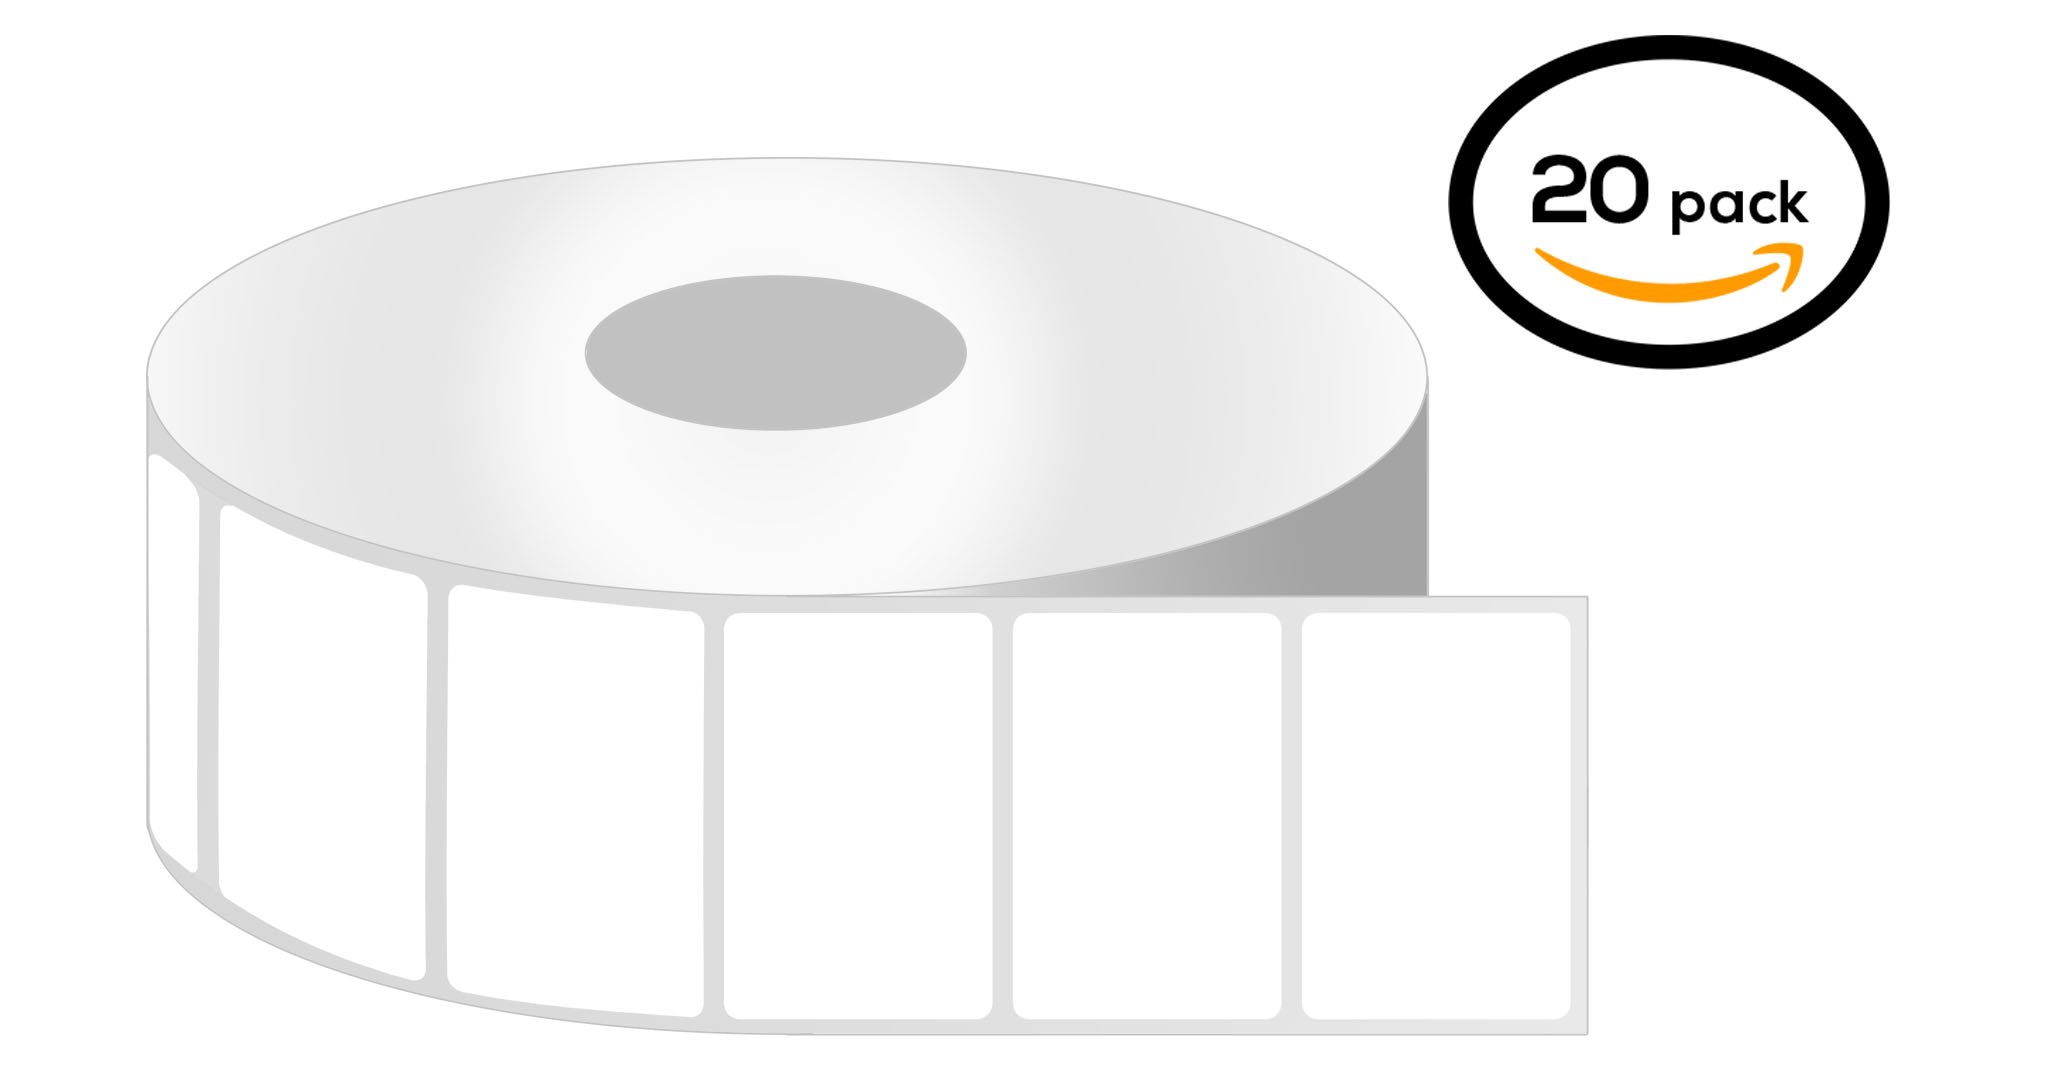 1 Inch Core - 2.25 x 2 Zebra Compatible Ribbon Required Thermal Transfer Labels 20 Rolls for Zebra Desktop Printer GC420t GK420t GX420t GX430t TLP2824 TLP2824Plus TLP2422 TLP2844 TLP2442